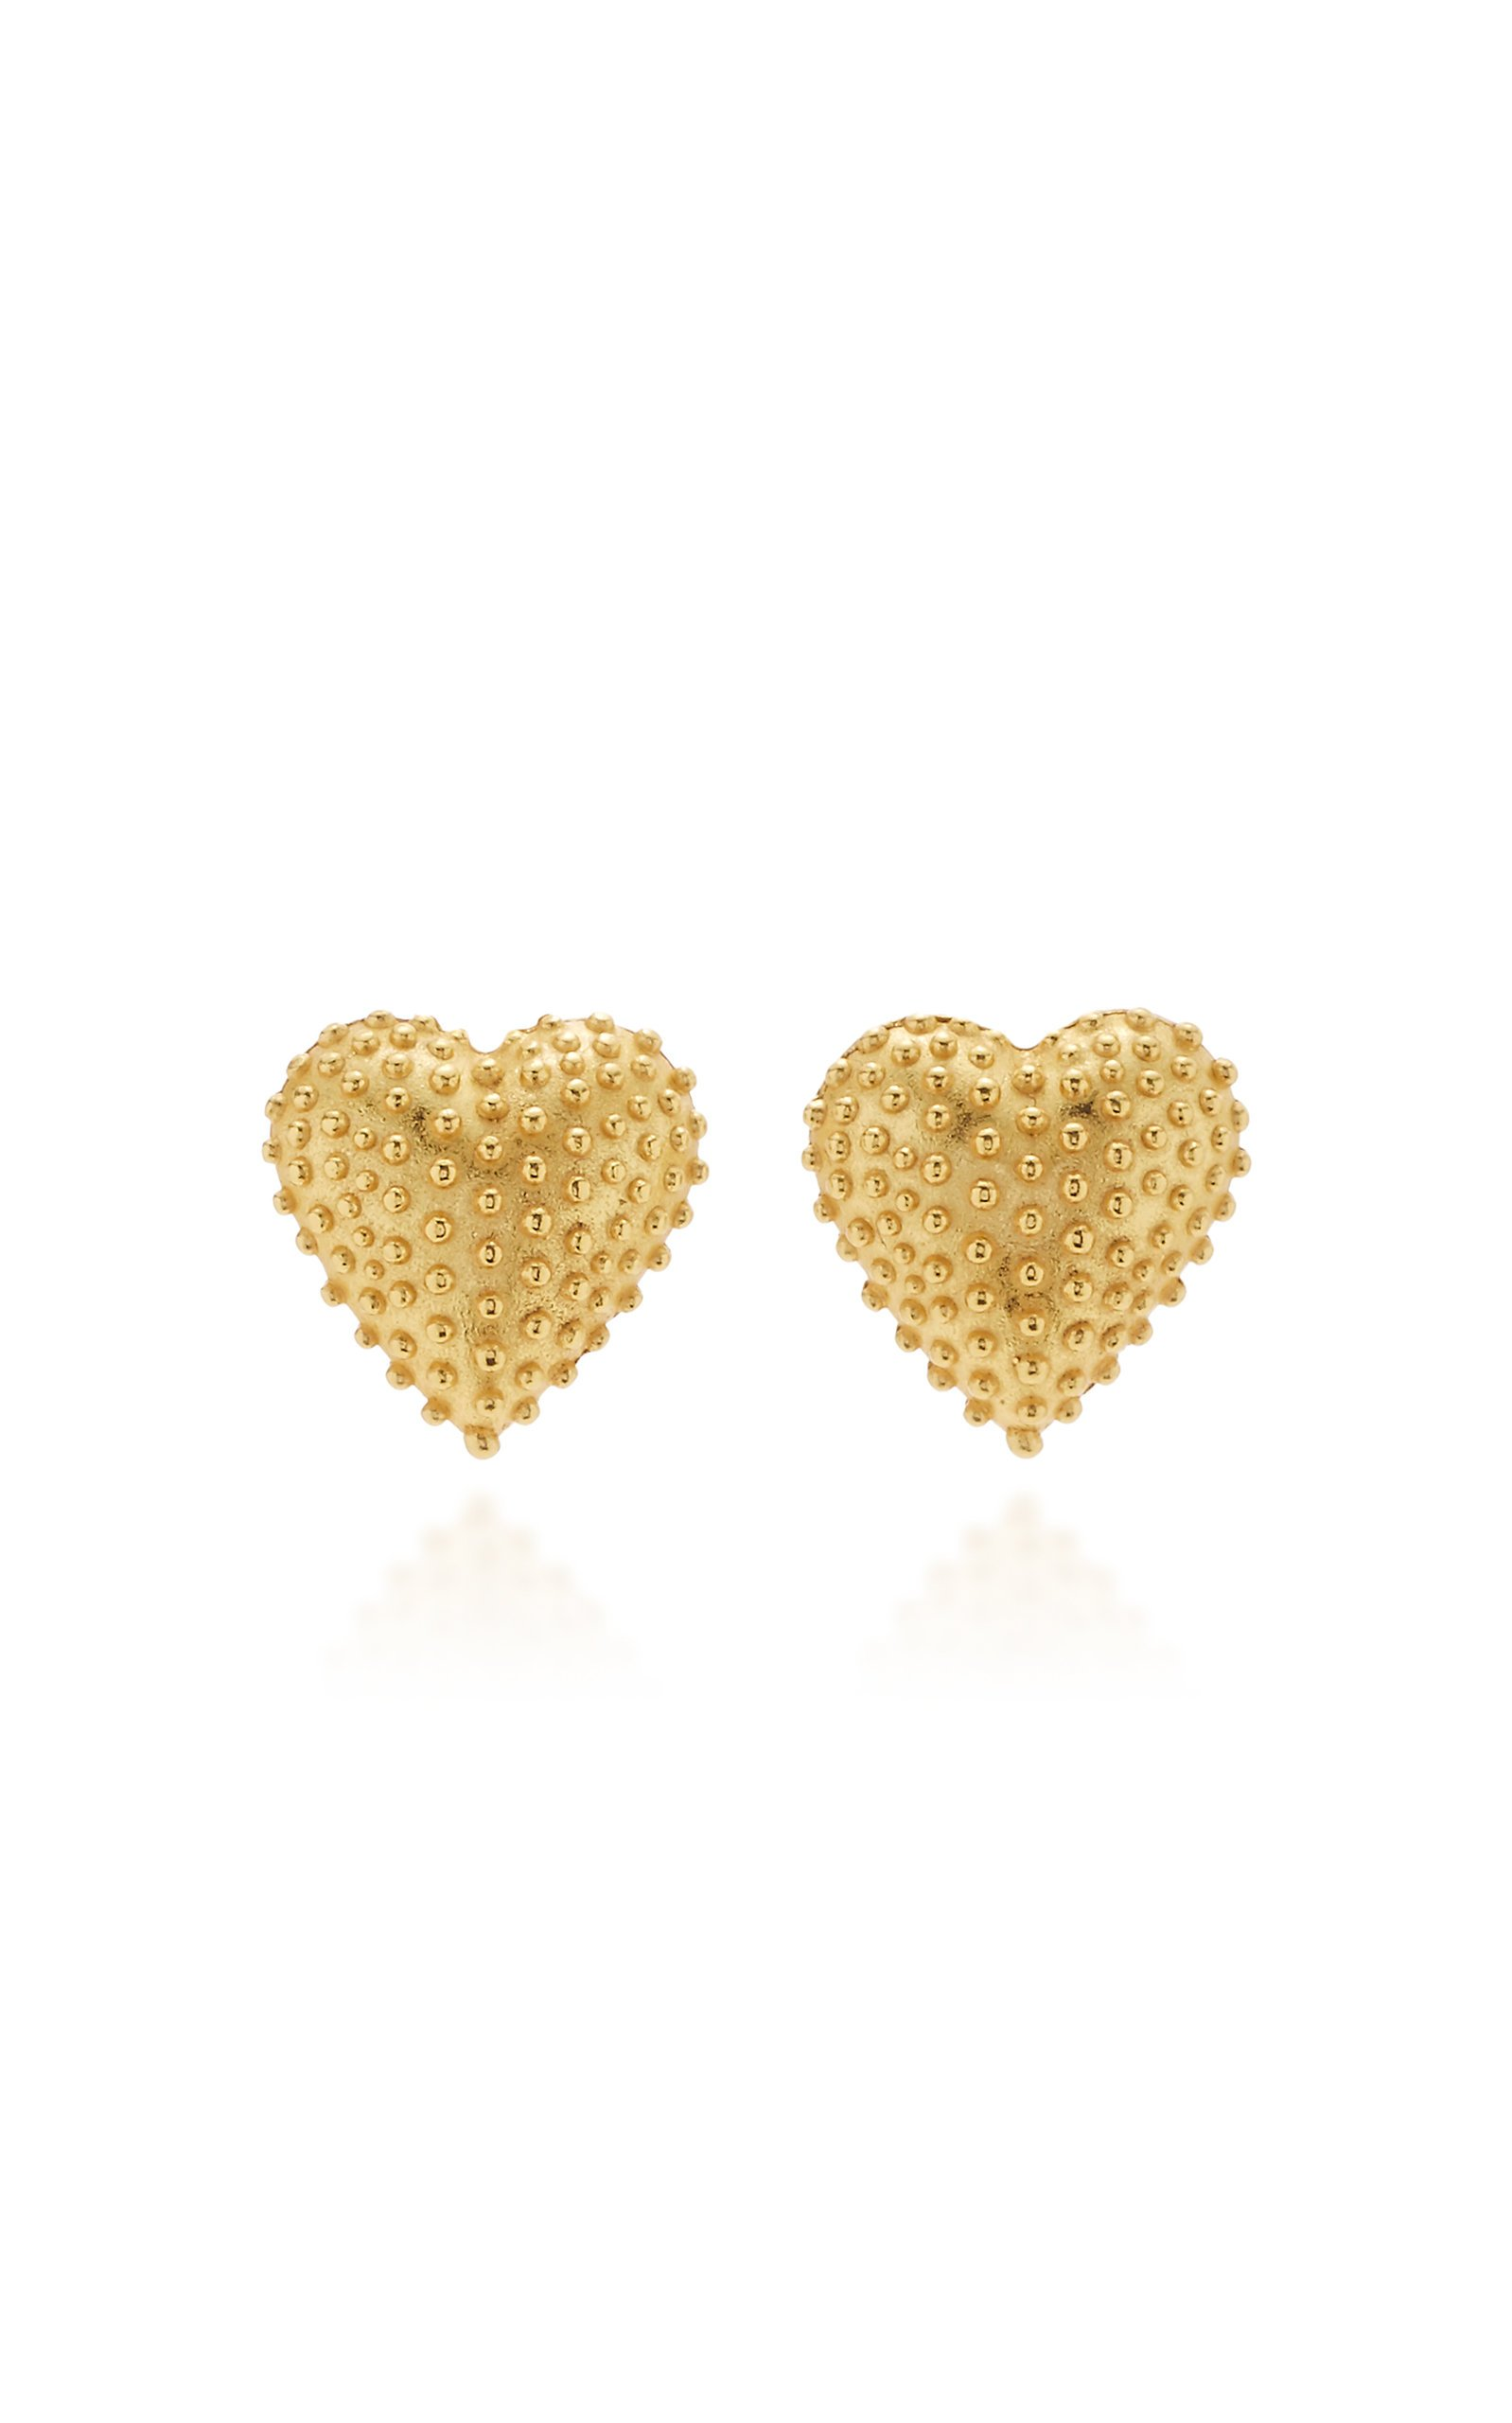 24k yellow gold filled pink sapphire enchanting stud brand new earring